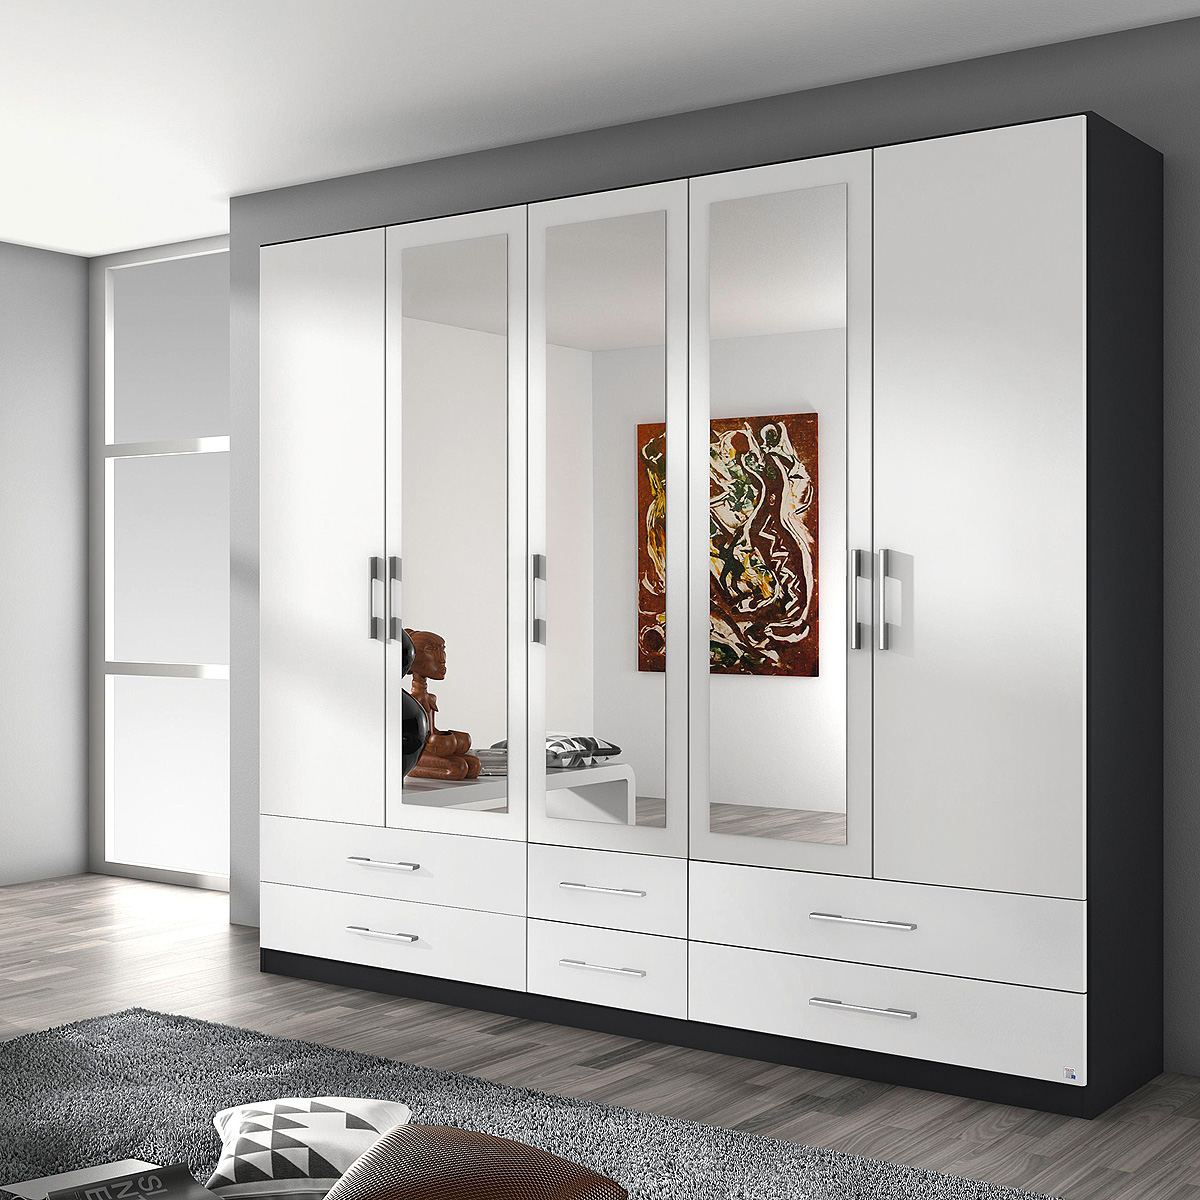 kleiderschrank hersbruck schrank in wei grau metallic oder eiche stirling 226 ebay. Black Bedroom Furniture Sets. Home Design Ideas